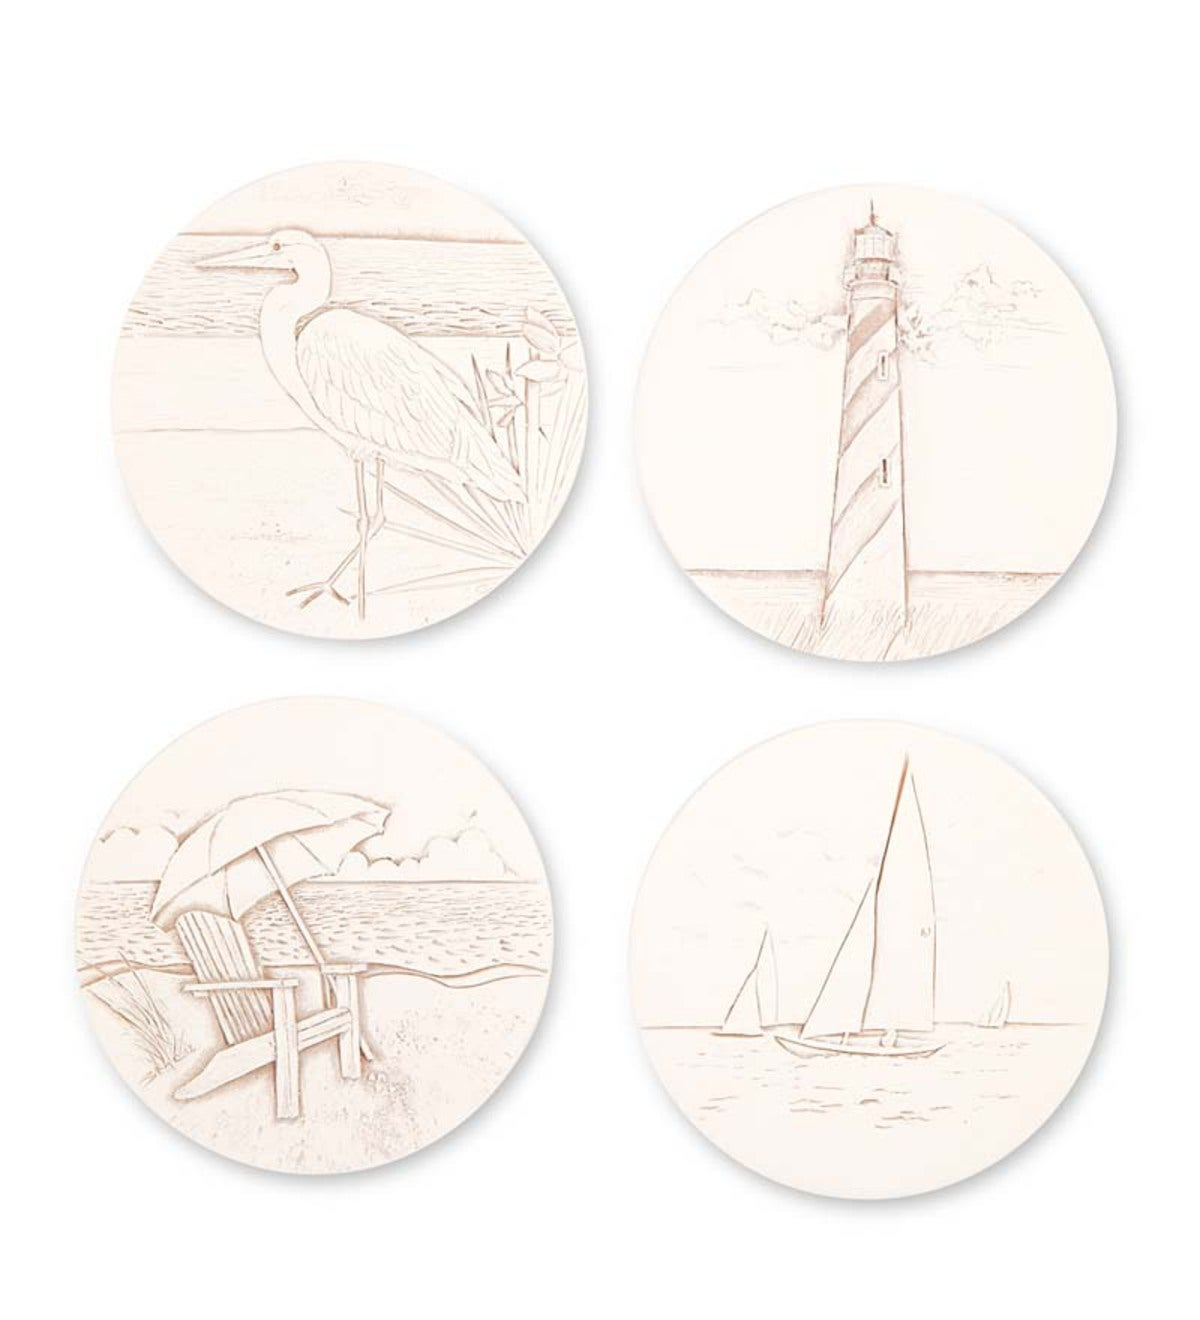 Handcrafted Nautical Clay Coasters, Set of 4 - Beach